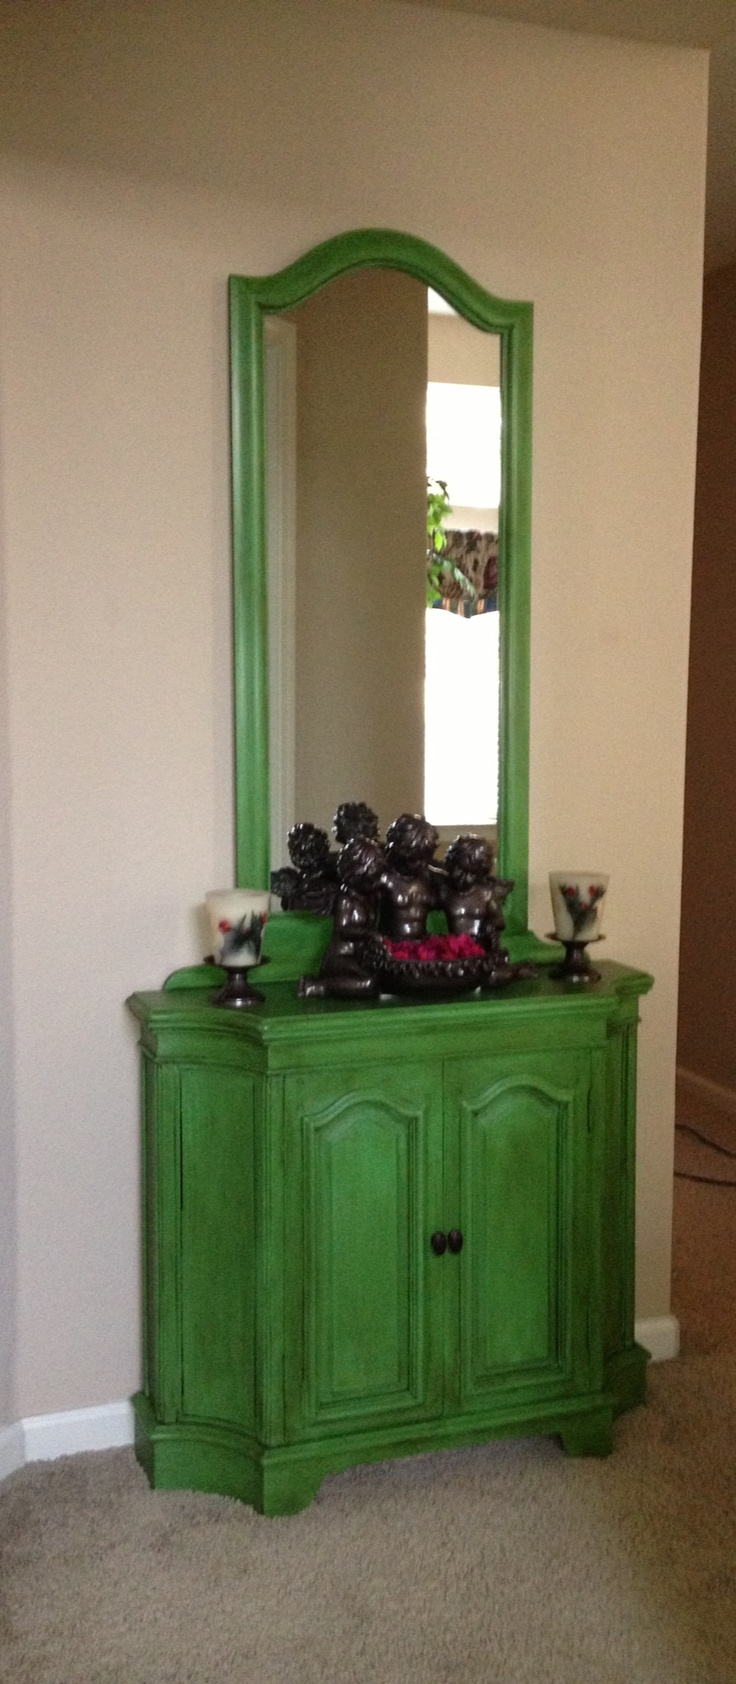 Annie Sloan Antibes Green With Clear And Dark Wax Green Painted Furniture Annie Sloan